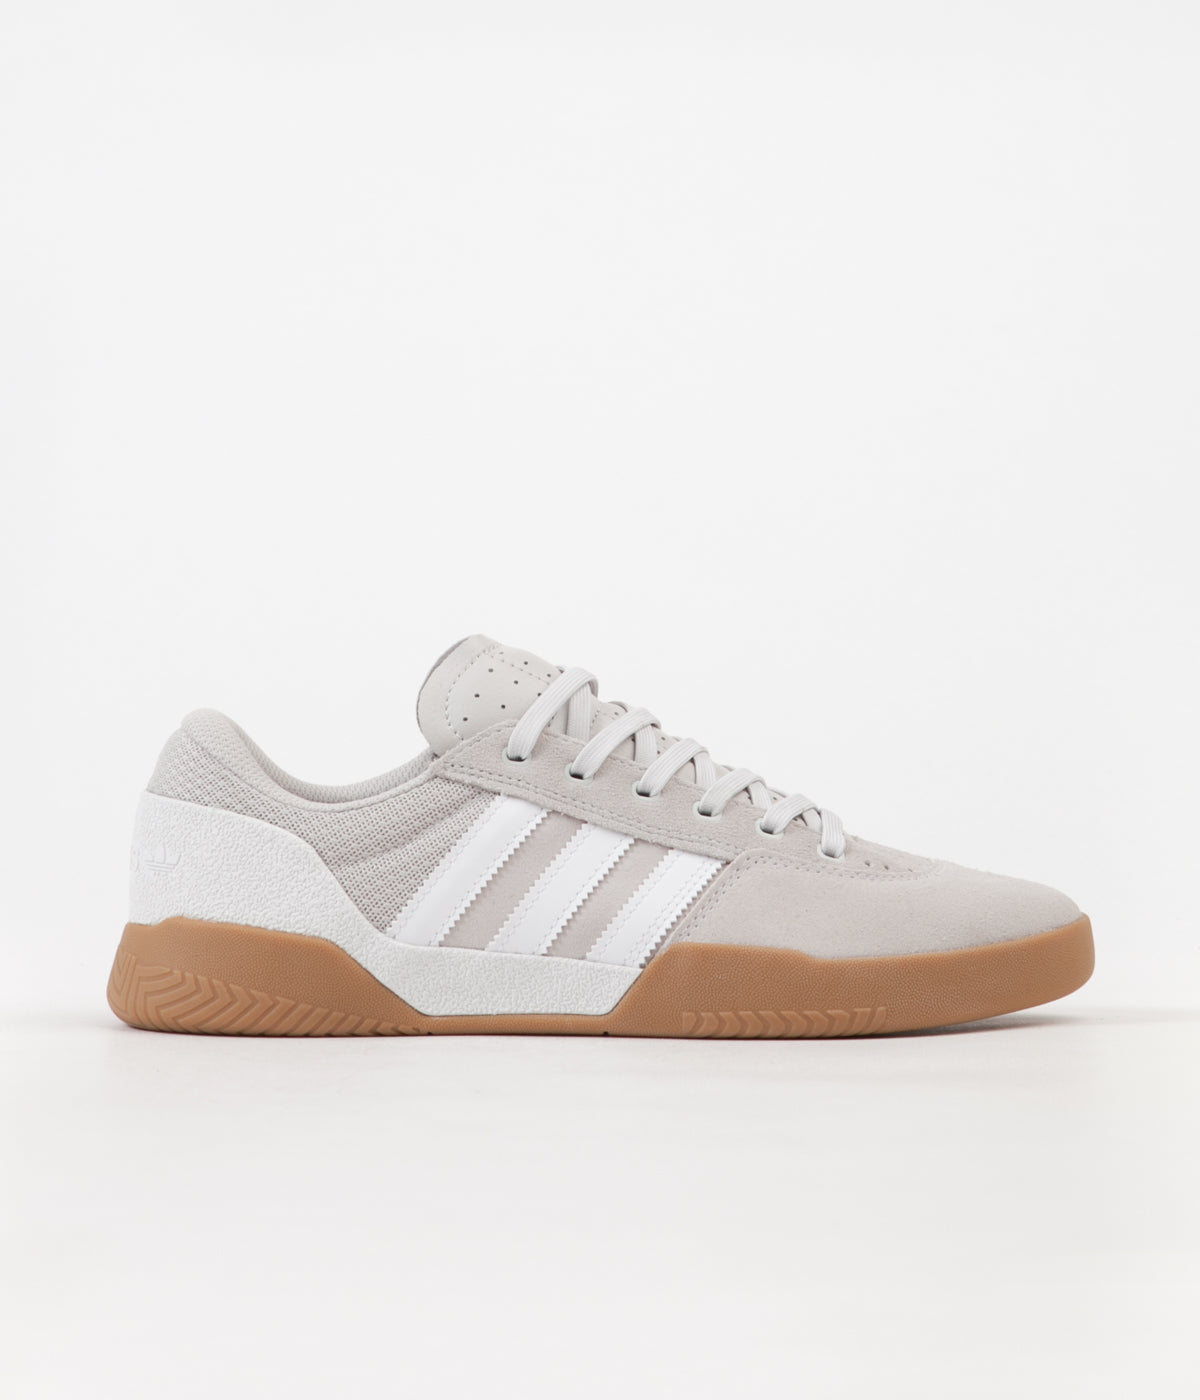 Adidas City Cup Shoes - Crystal White